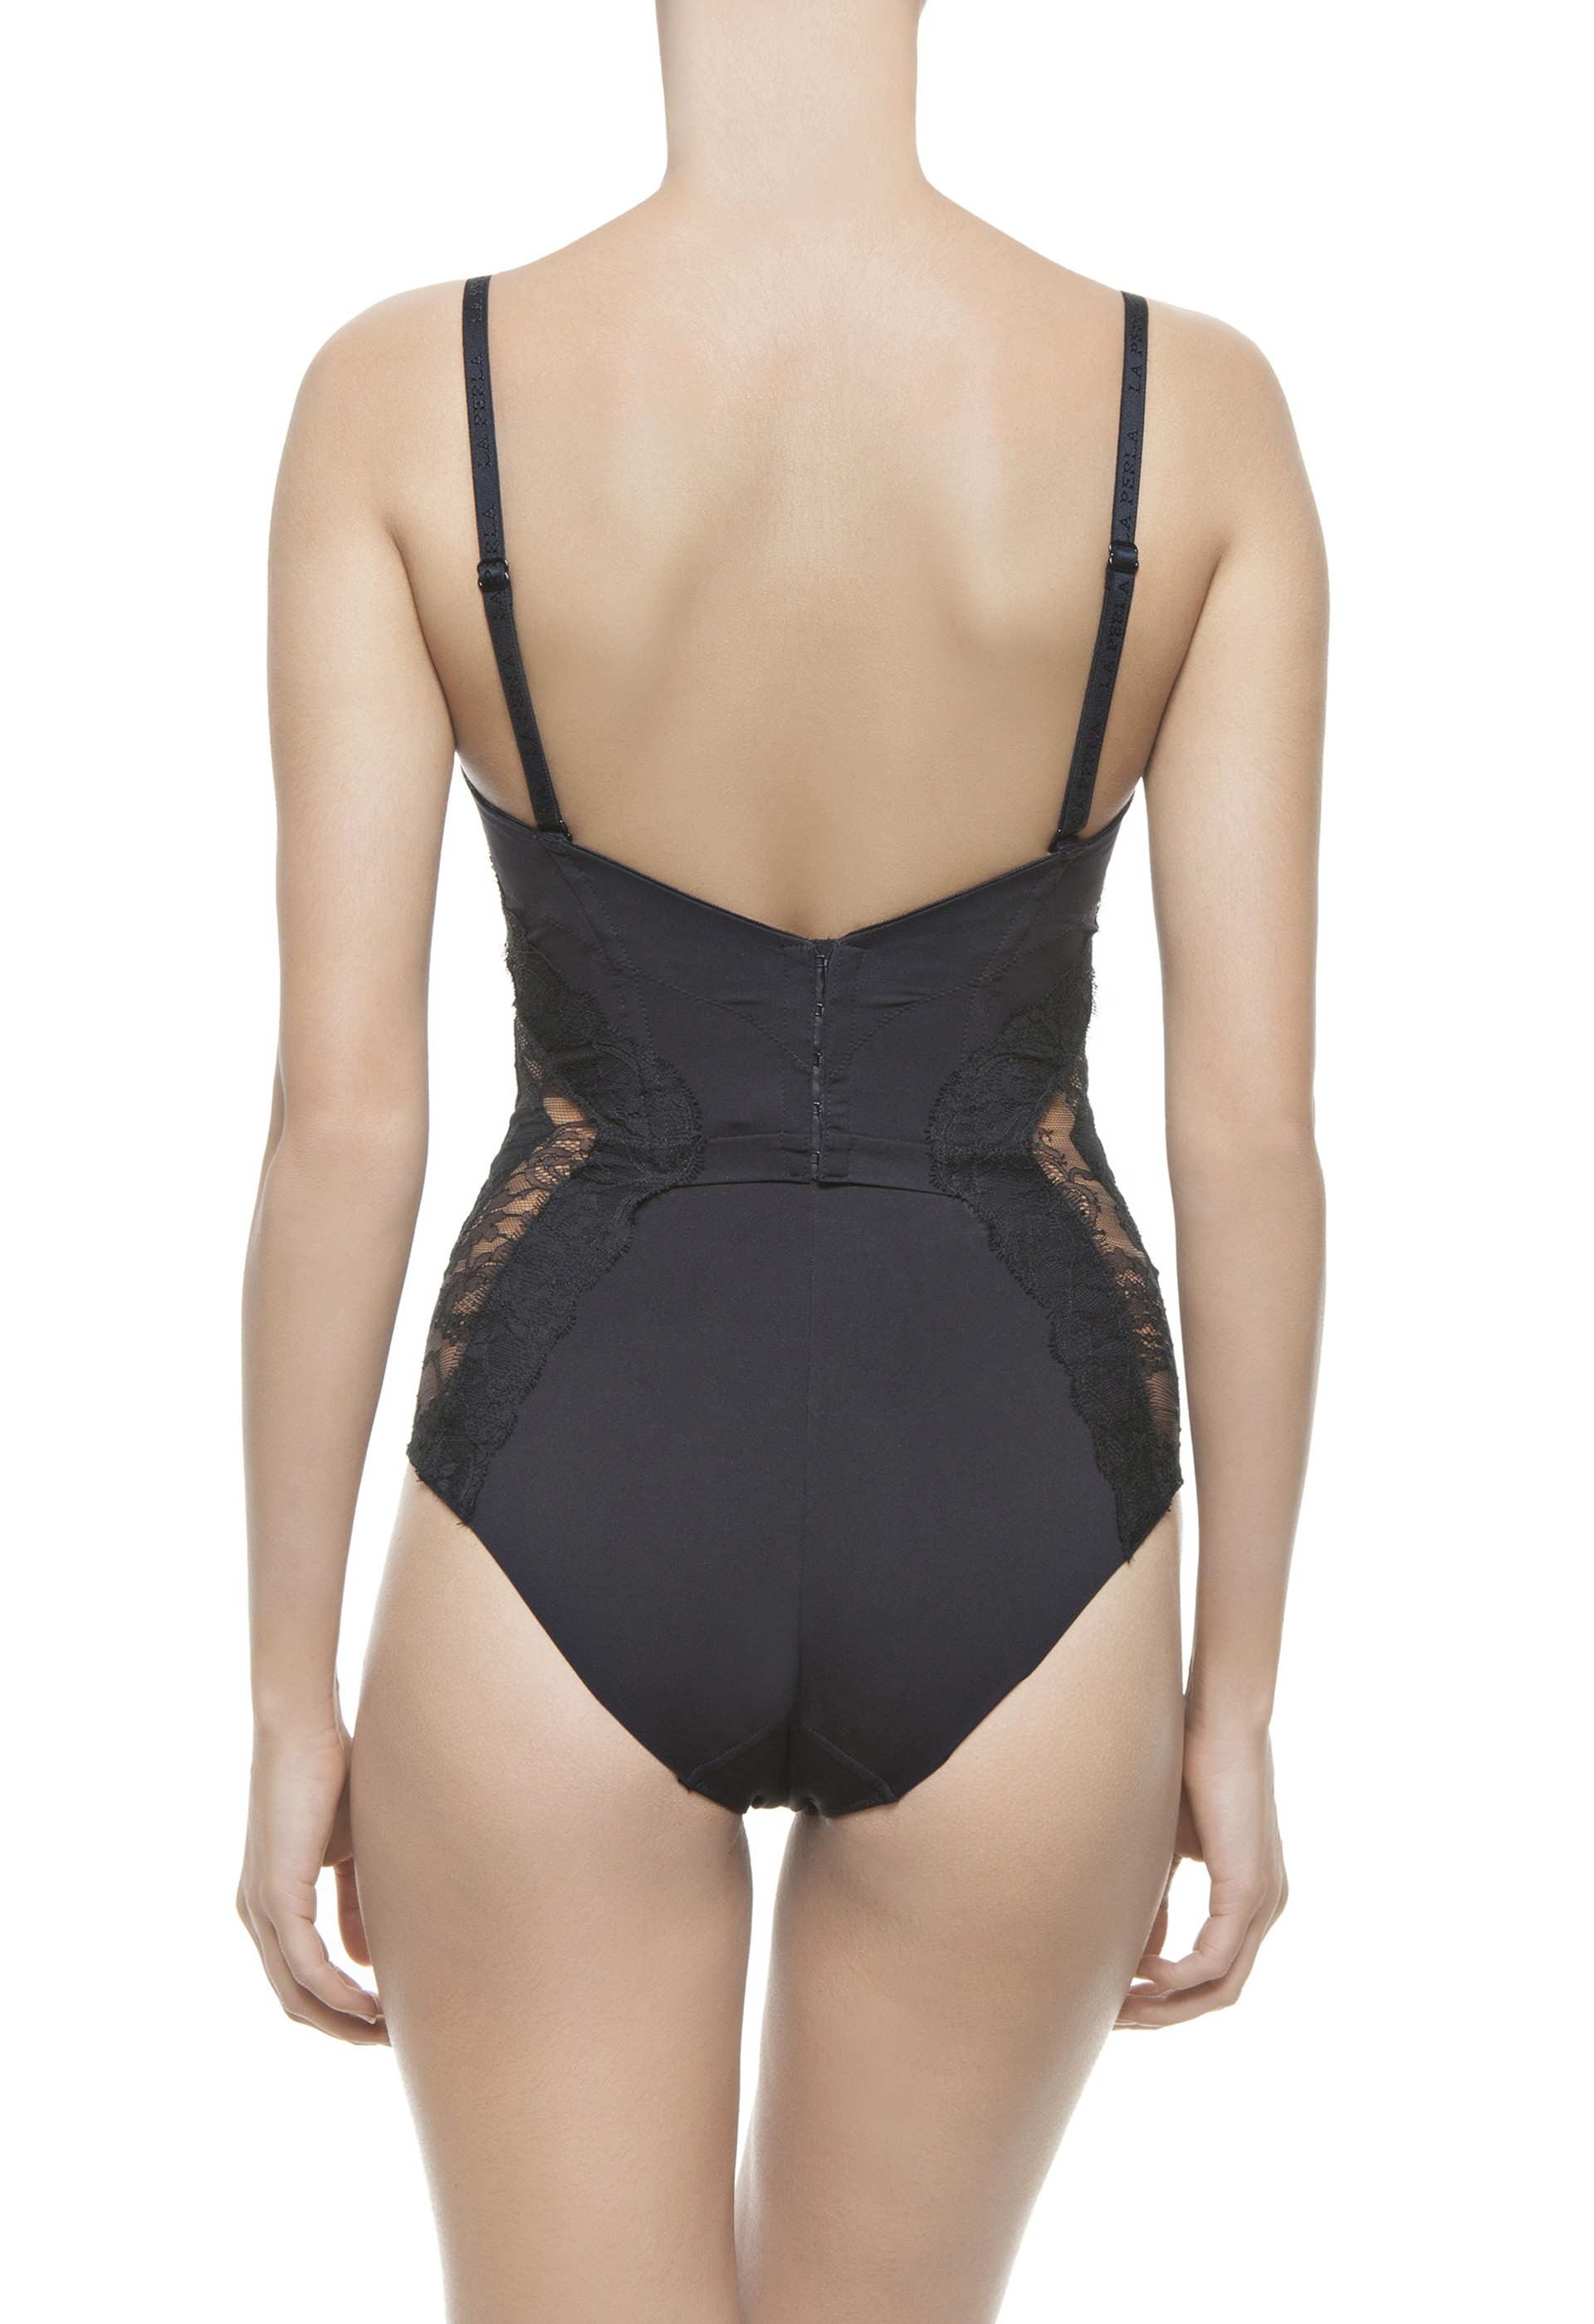 laperla bodysuits 14-19